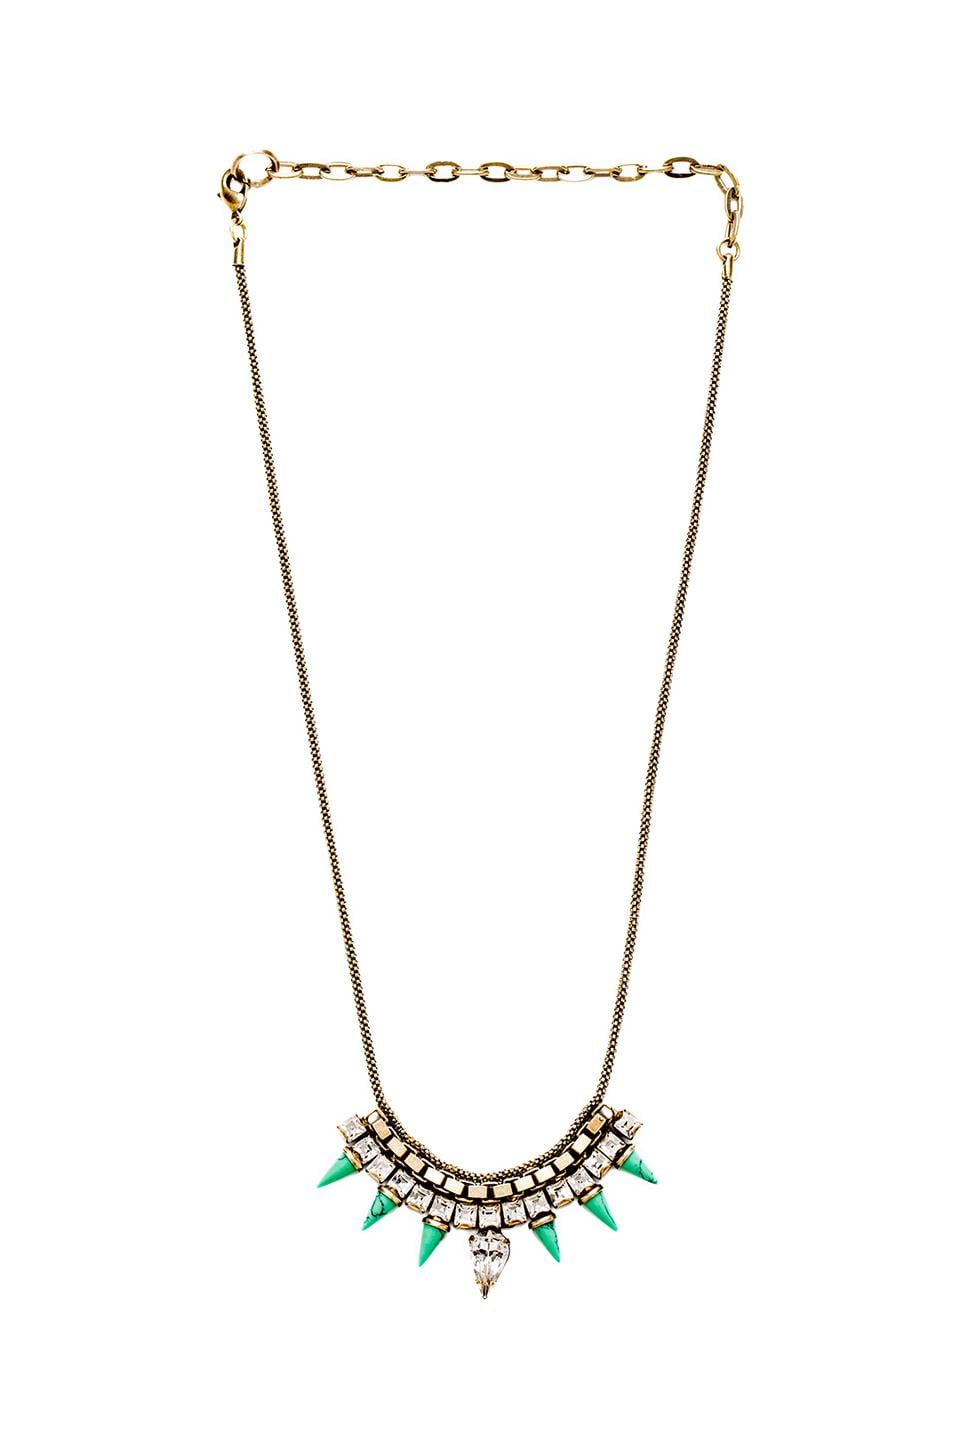 Lionette by Noa Sade Pangea Necklace in Clear Turquoise